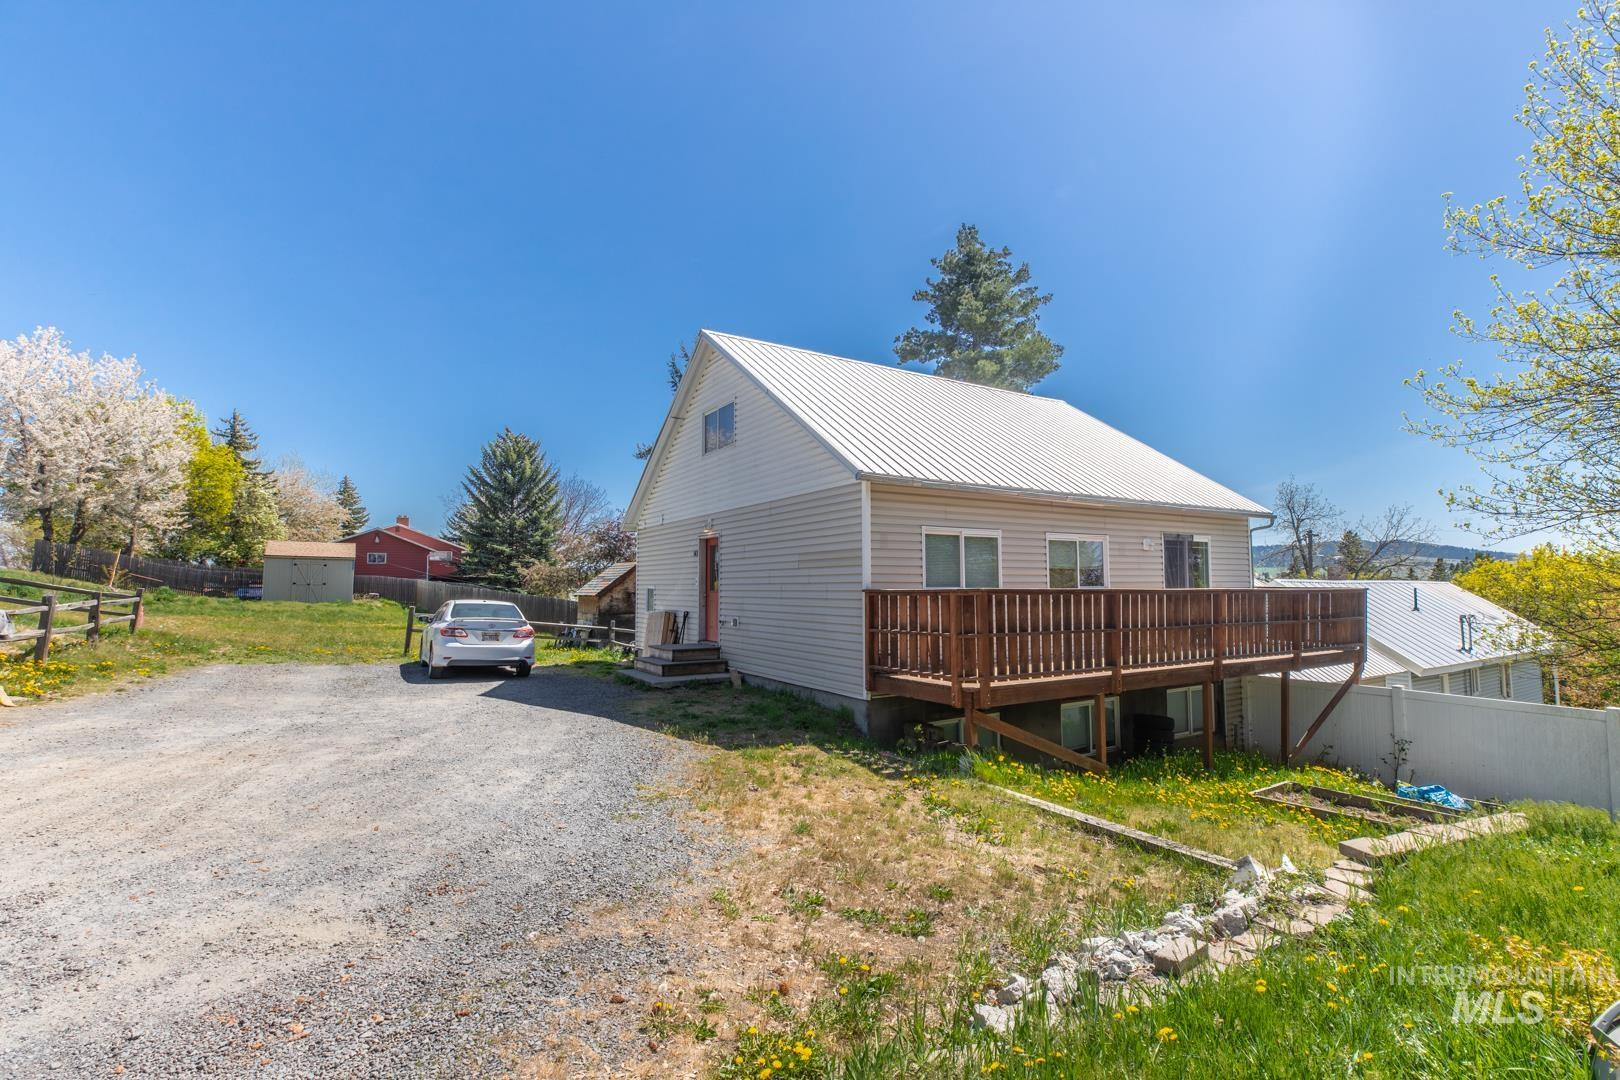 534 W C Street Property Photo - Moscow, ID real estate listing